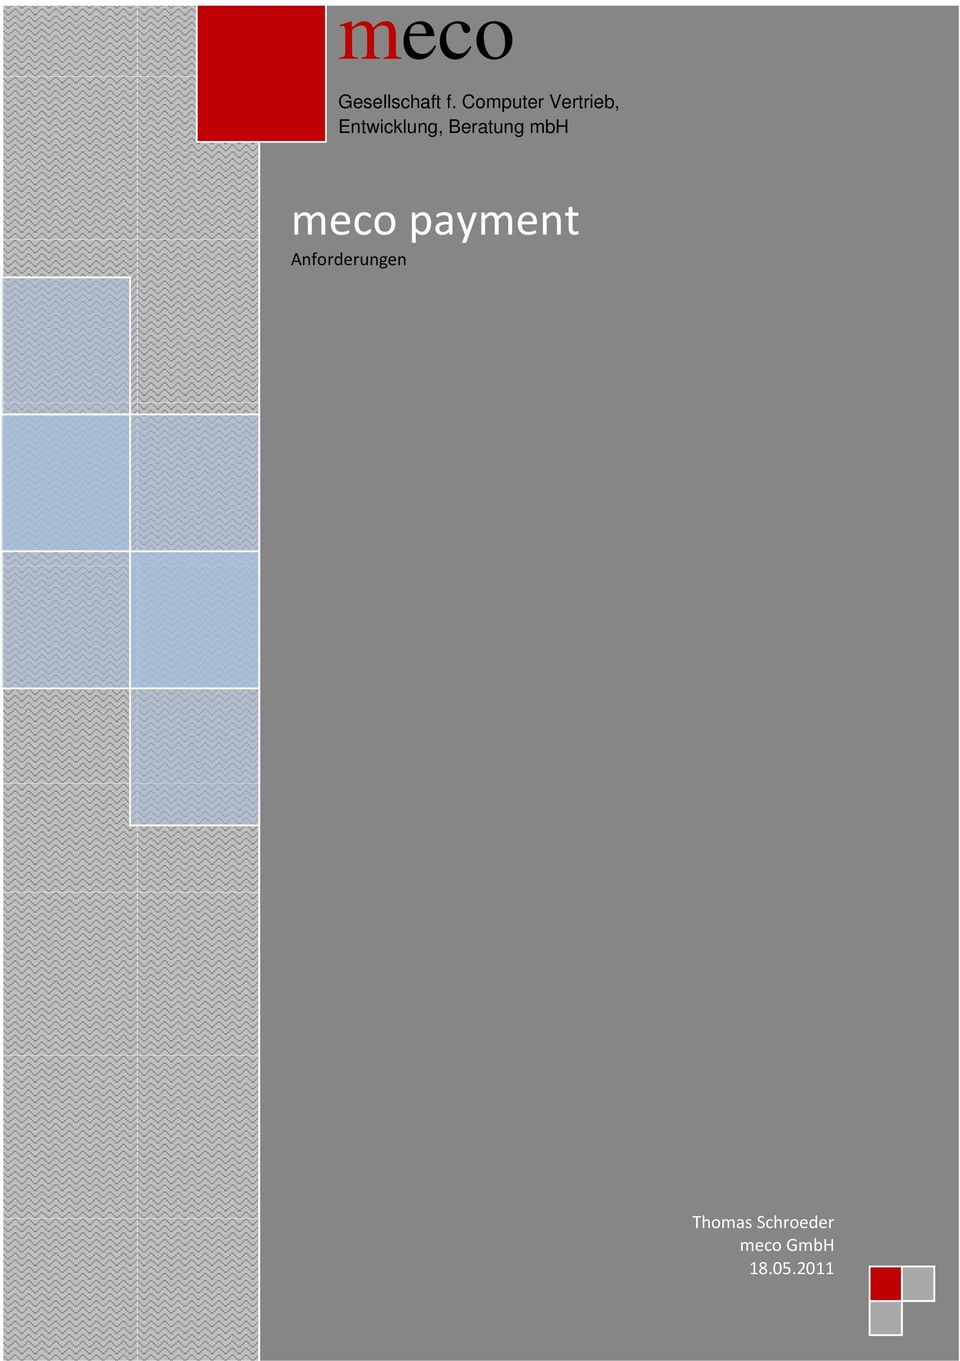 Beratung mbh meco payment